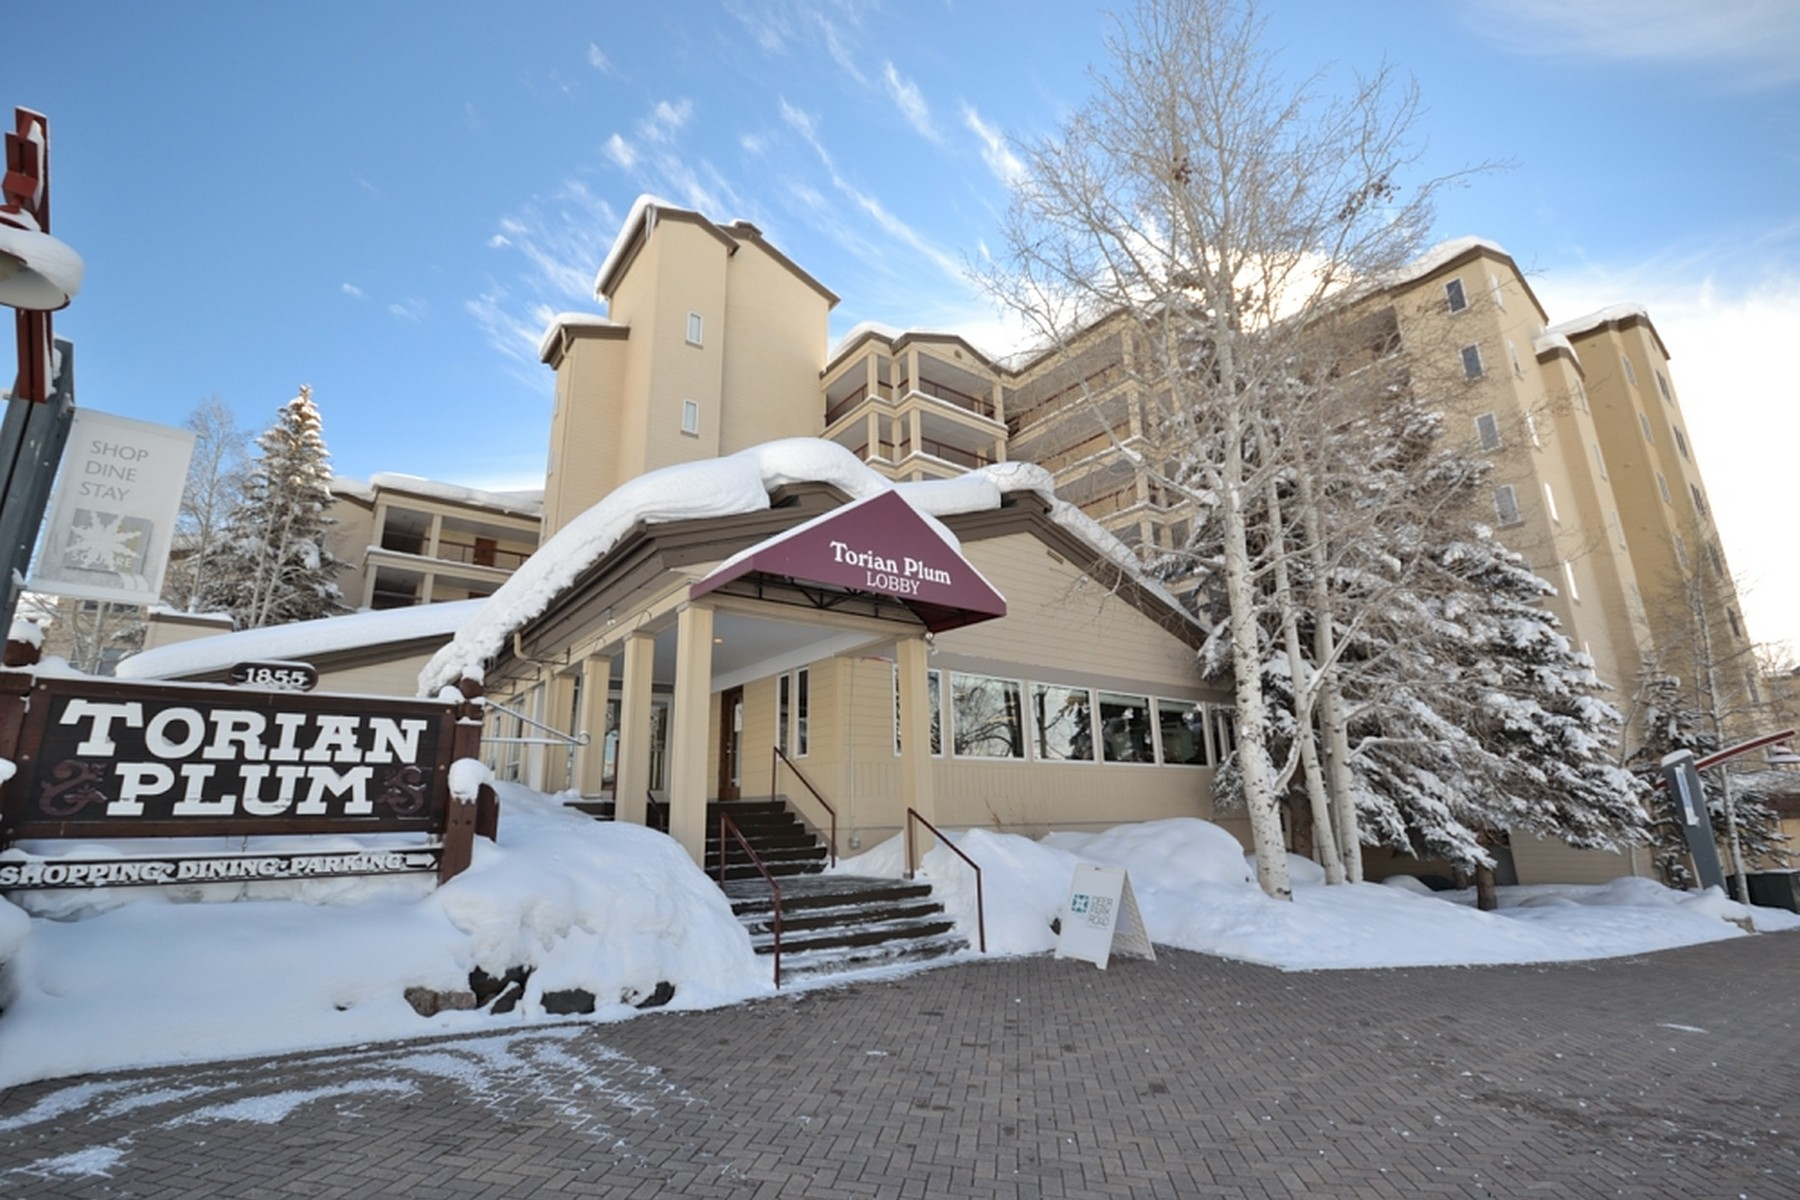 Condominium for Sale at Torian Plum #205: 2014 Remodel 1855 Ski Time Square Dr. #205 Steamboat Springs, Colorado 80487 United States